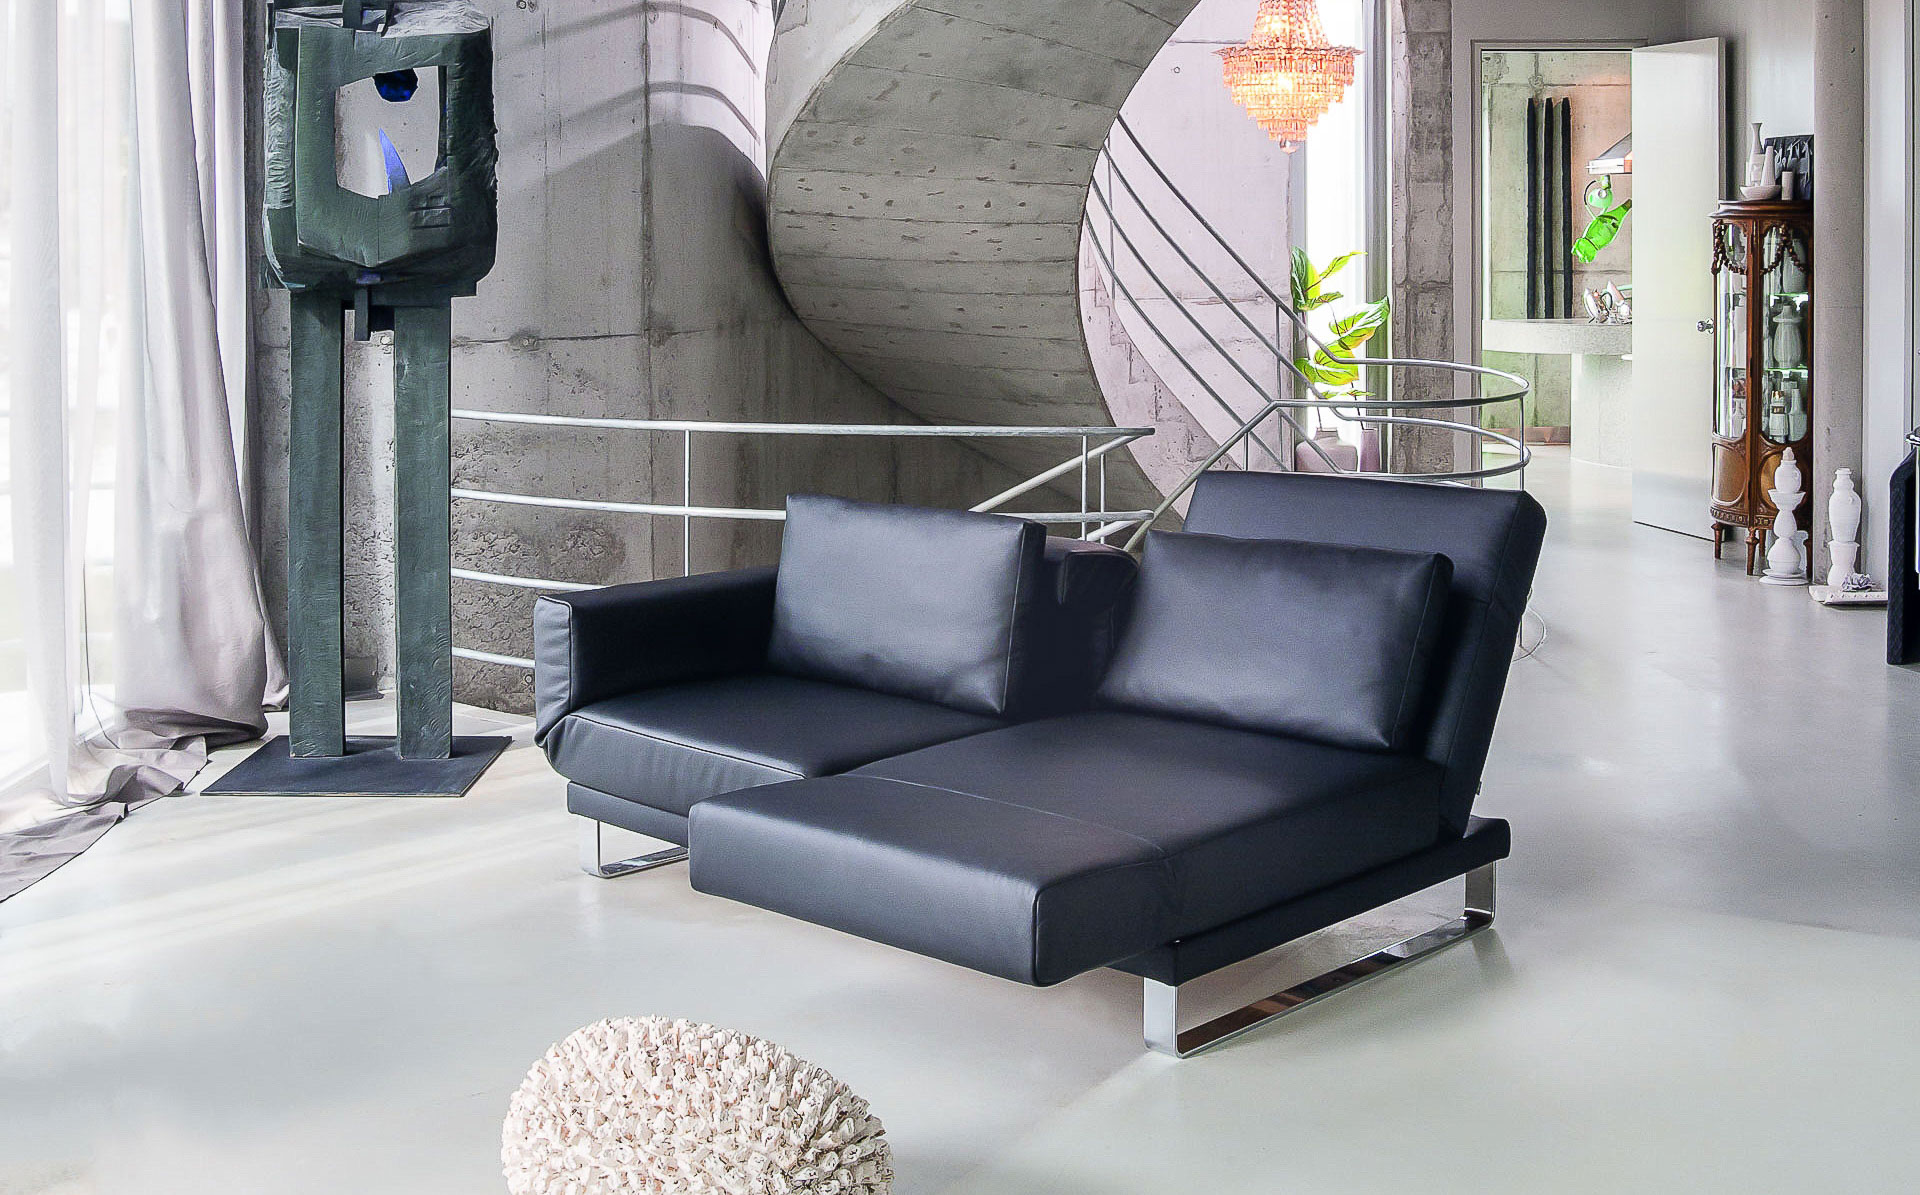 franz fertig sofas kaufen schlafsofa live von franz fertig. Black Bedroom Furniture Sets. Home Design Ideas